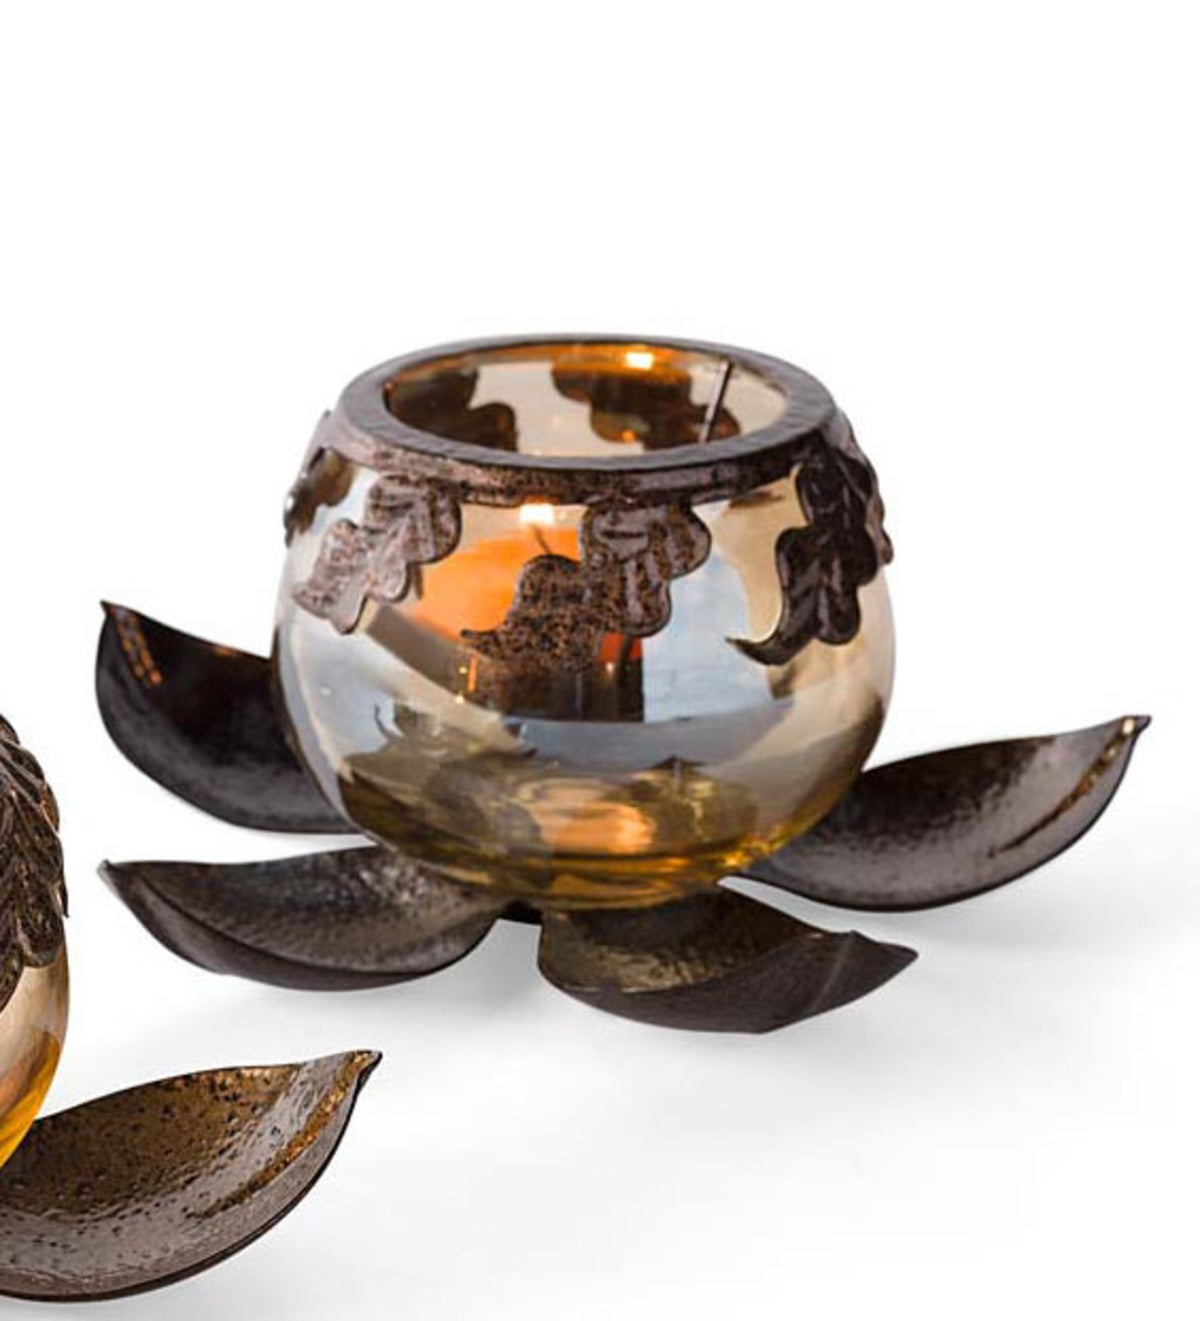 Open Lotus Flower Votive Holder Set - Copper